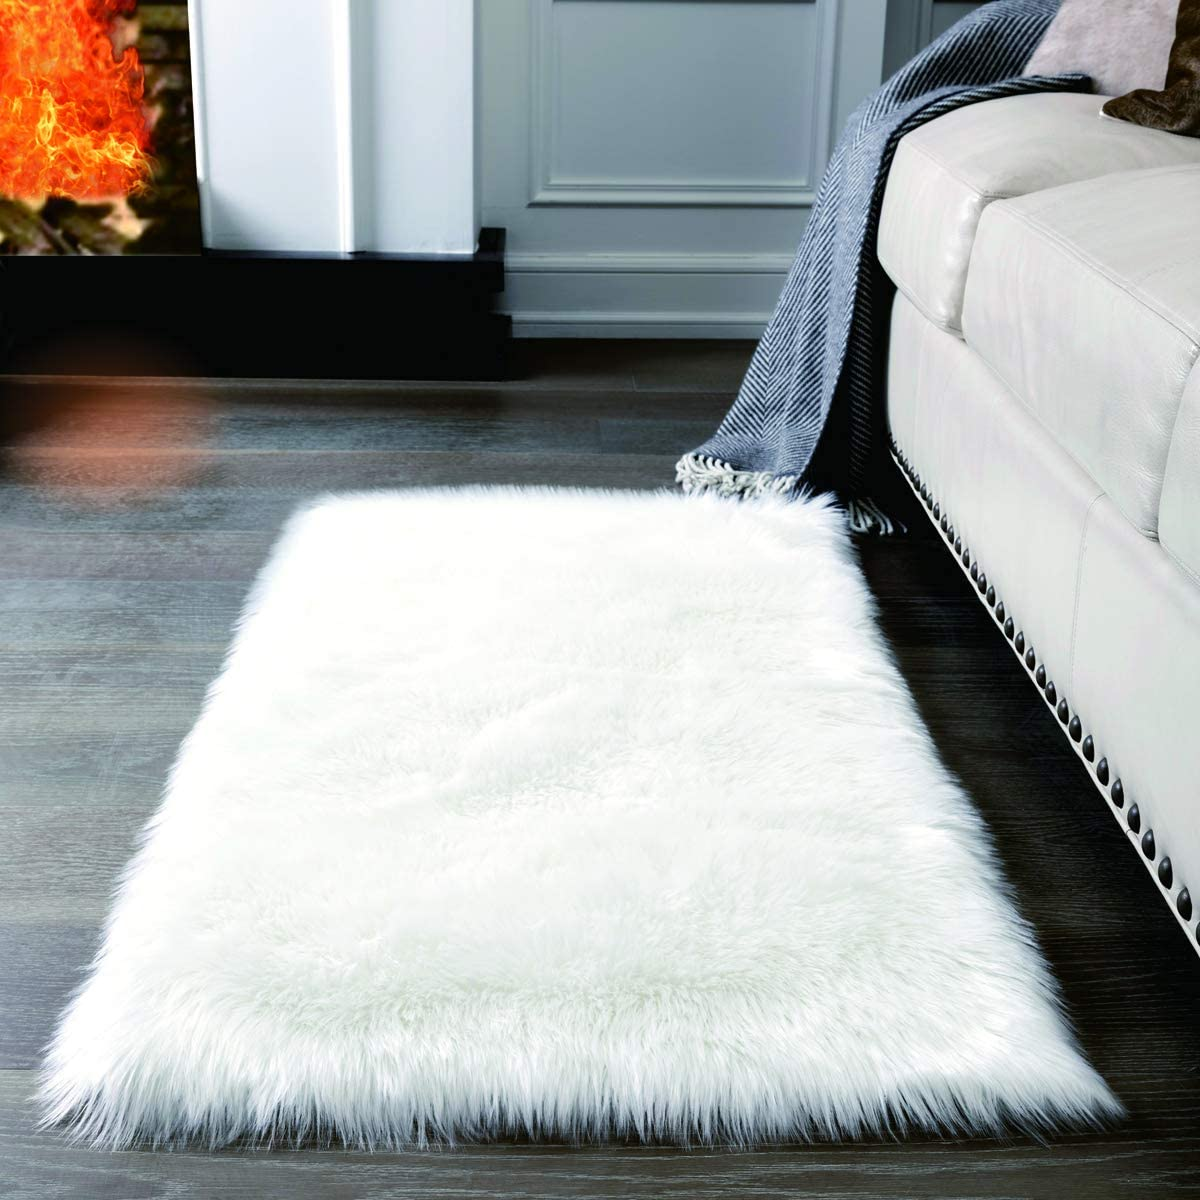 Amazon.com: Super Soft White Fluffy Rug Faux Fur Area Rug, Fur ...